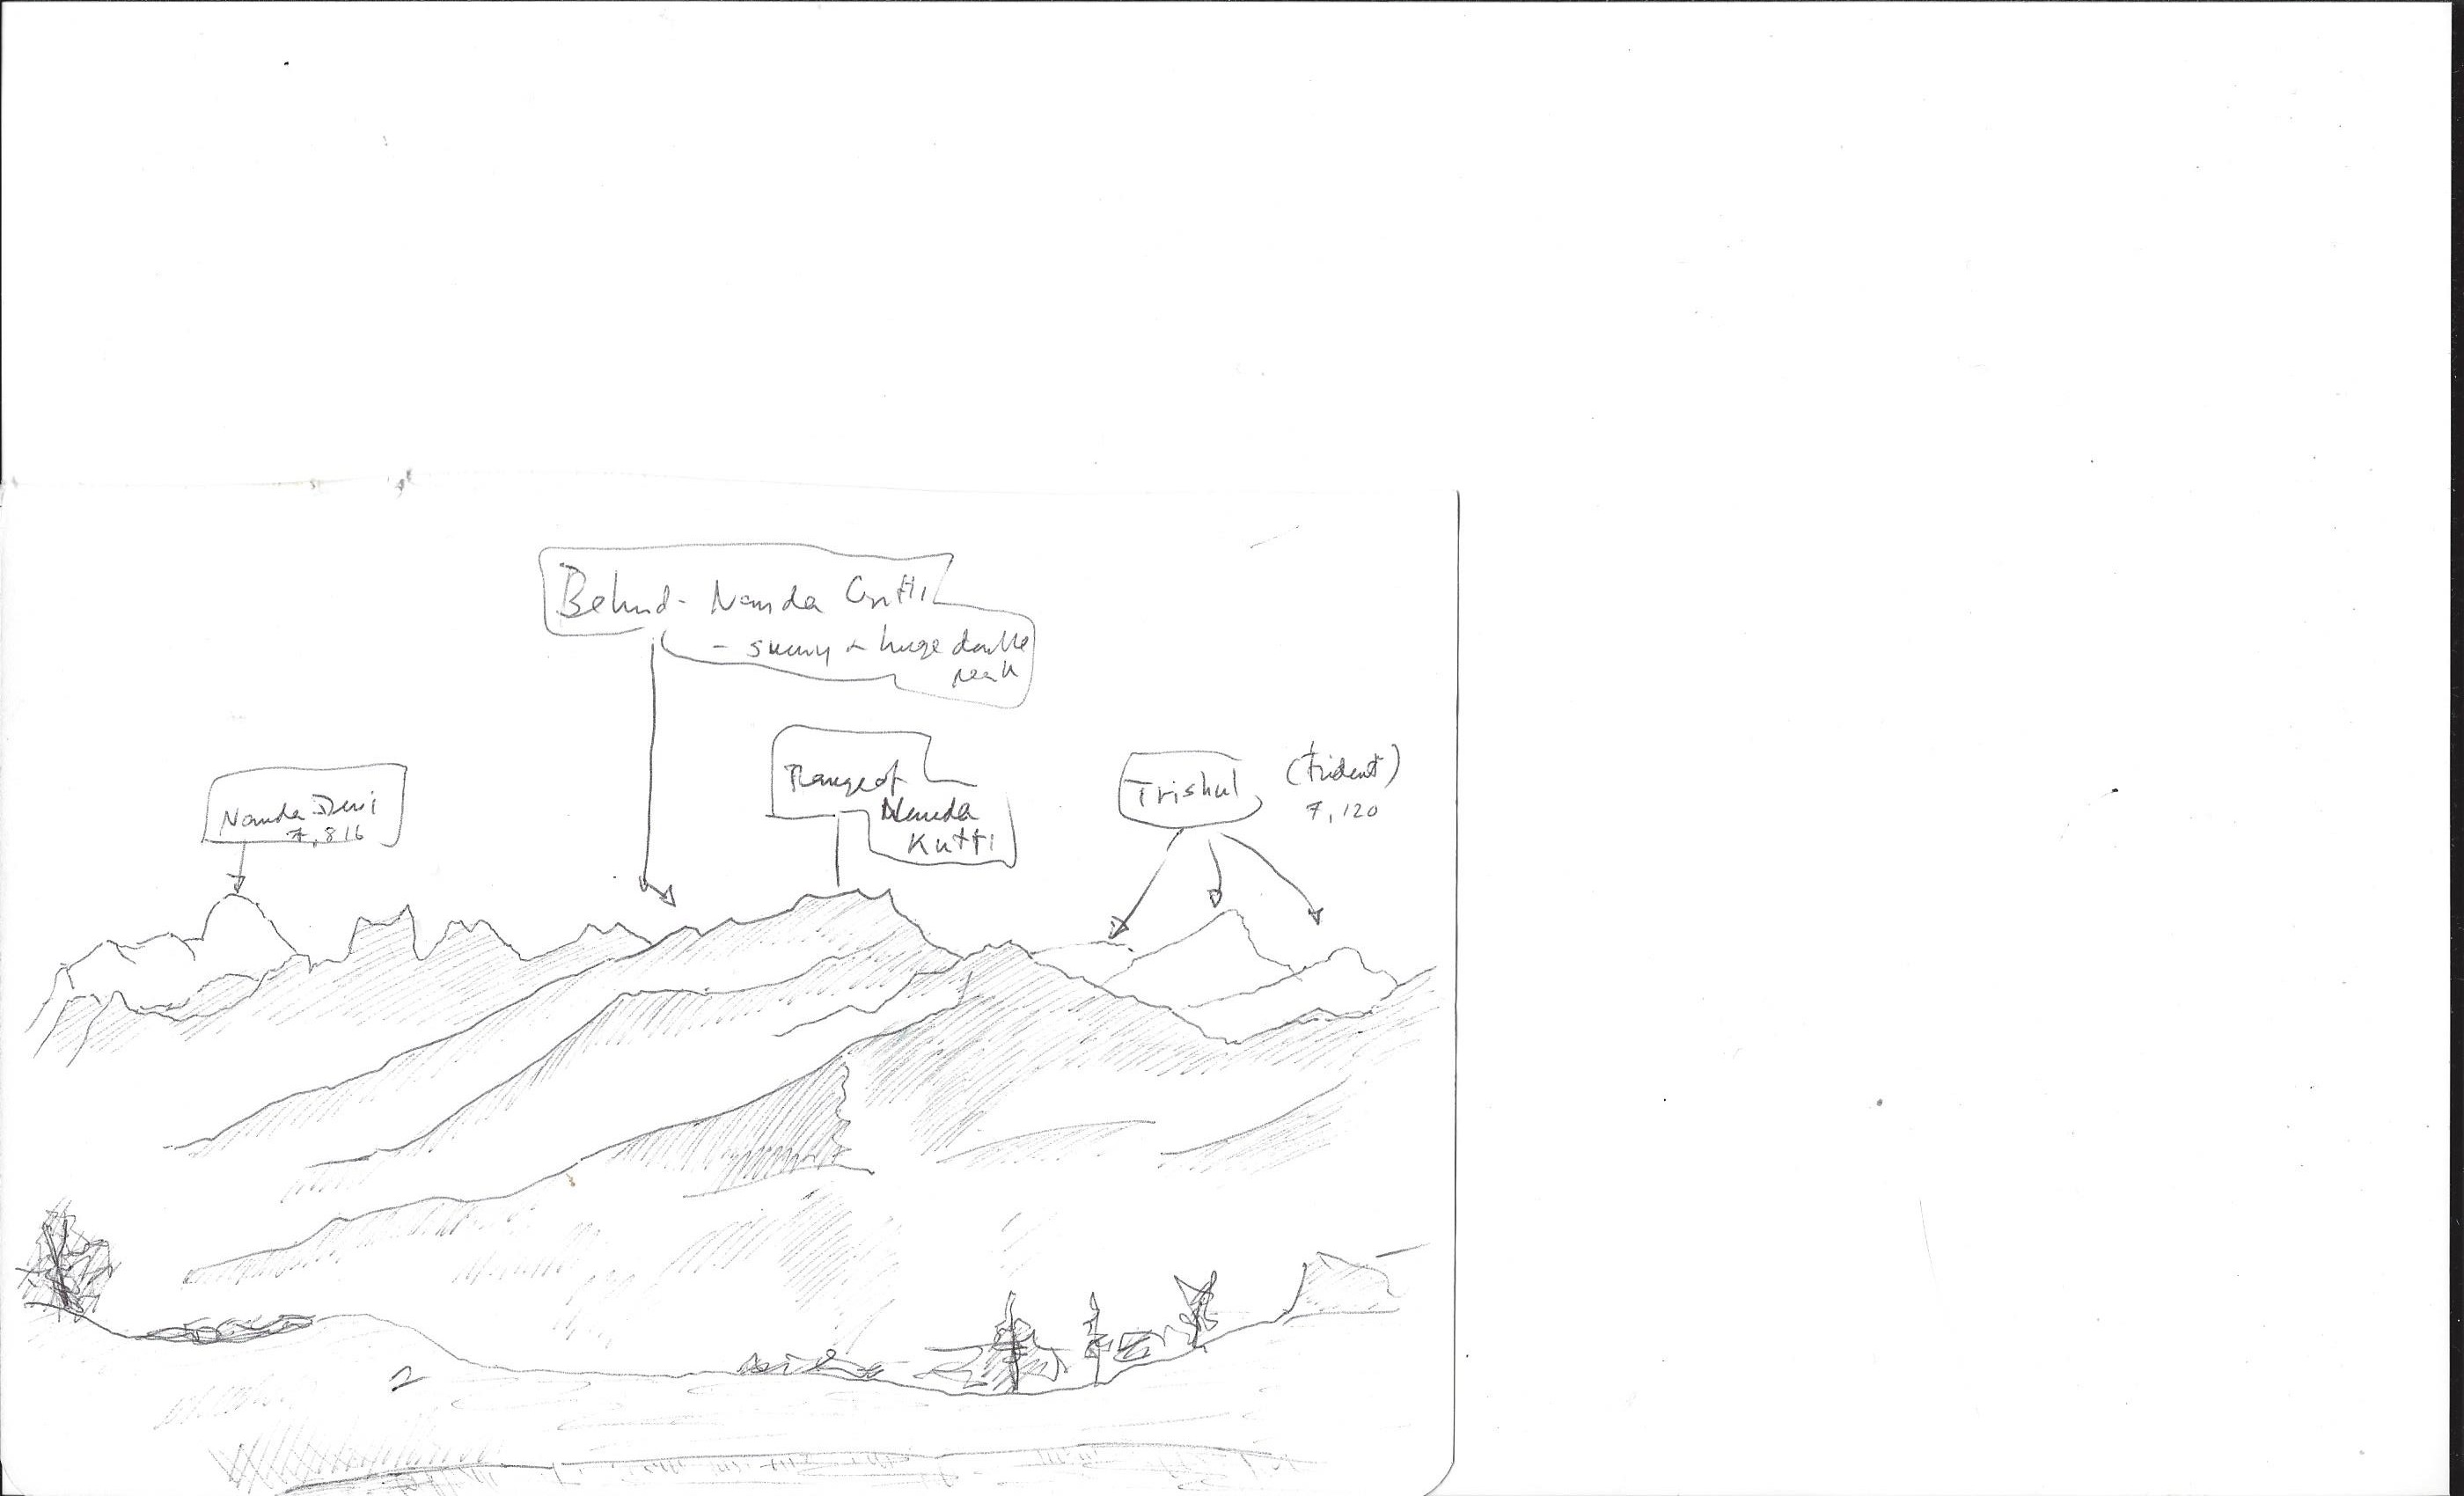 Curzon high mountains drawing 10.18 - © William Mackesy